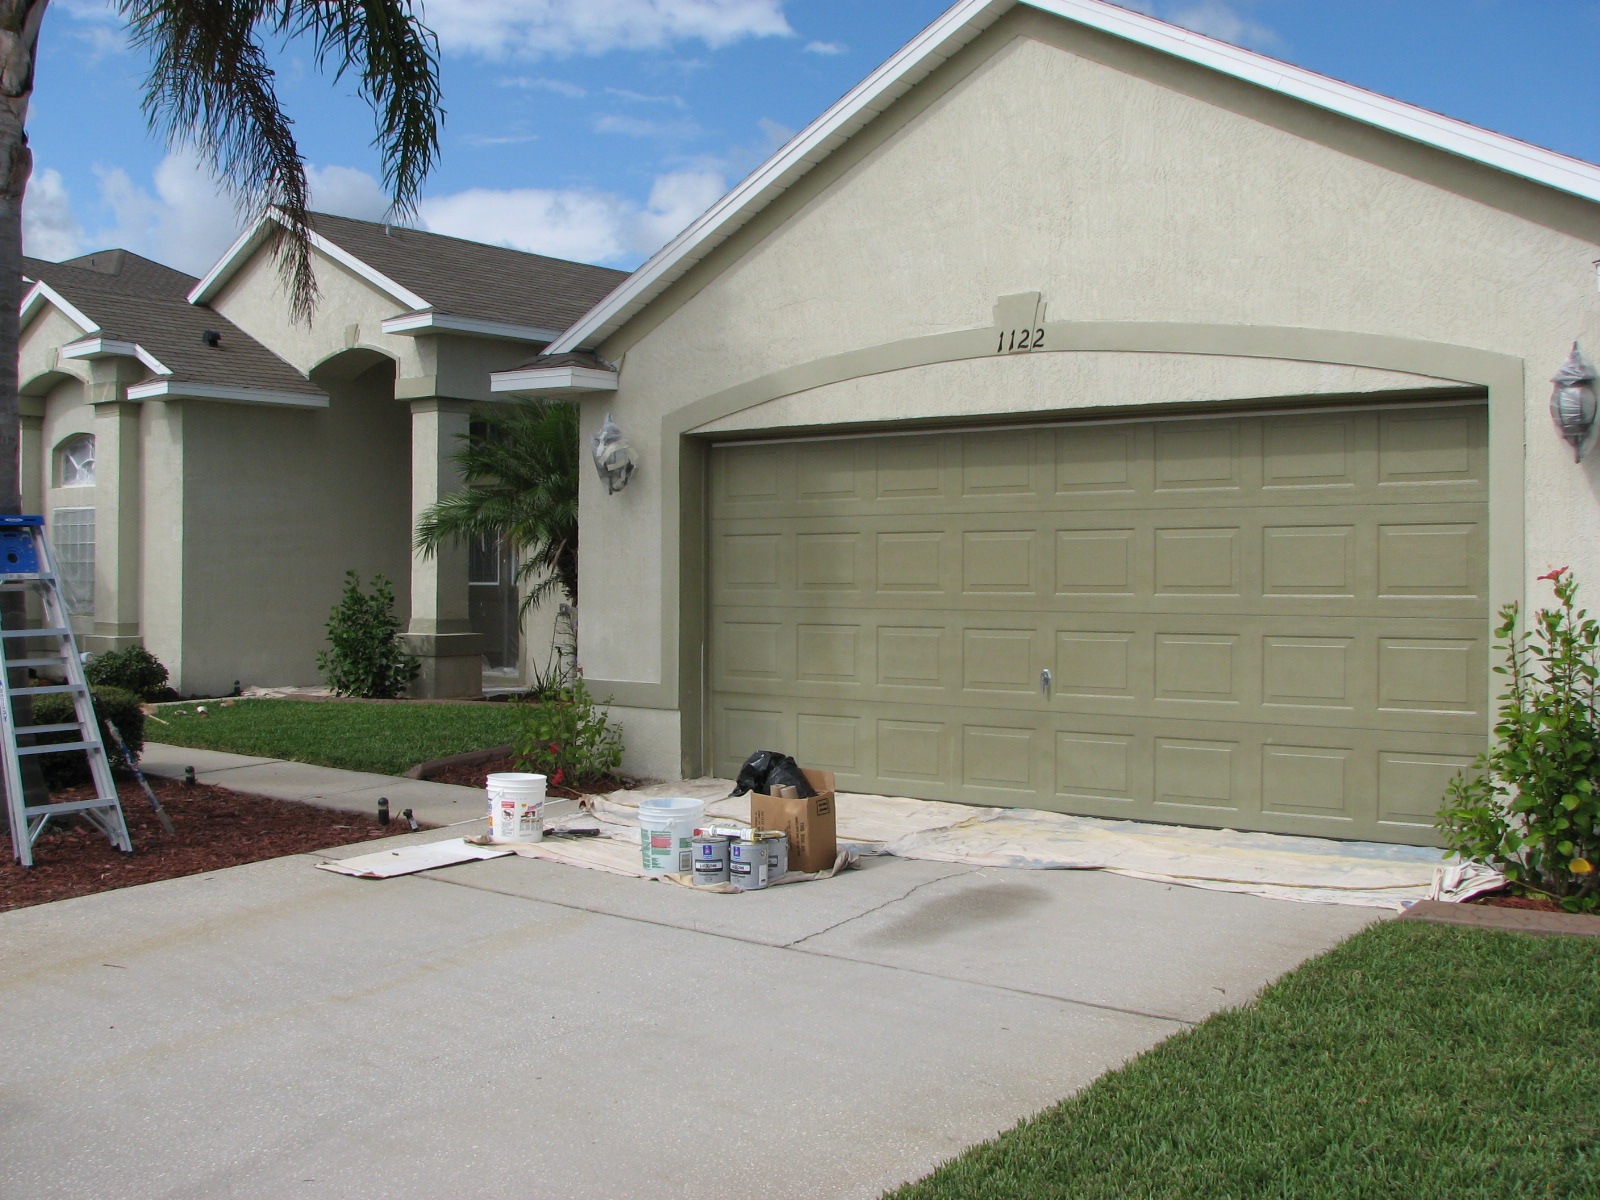 Chalky And Faded Paint House Painting Project In Melbourne Fl - Home-exterior-painting